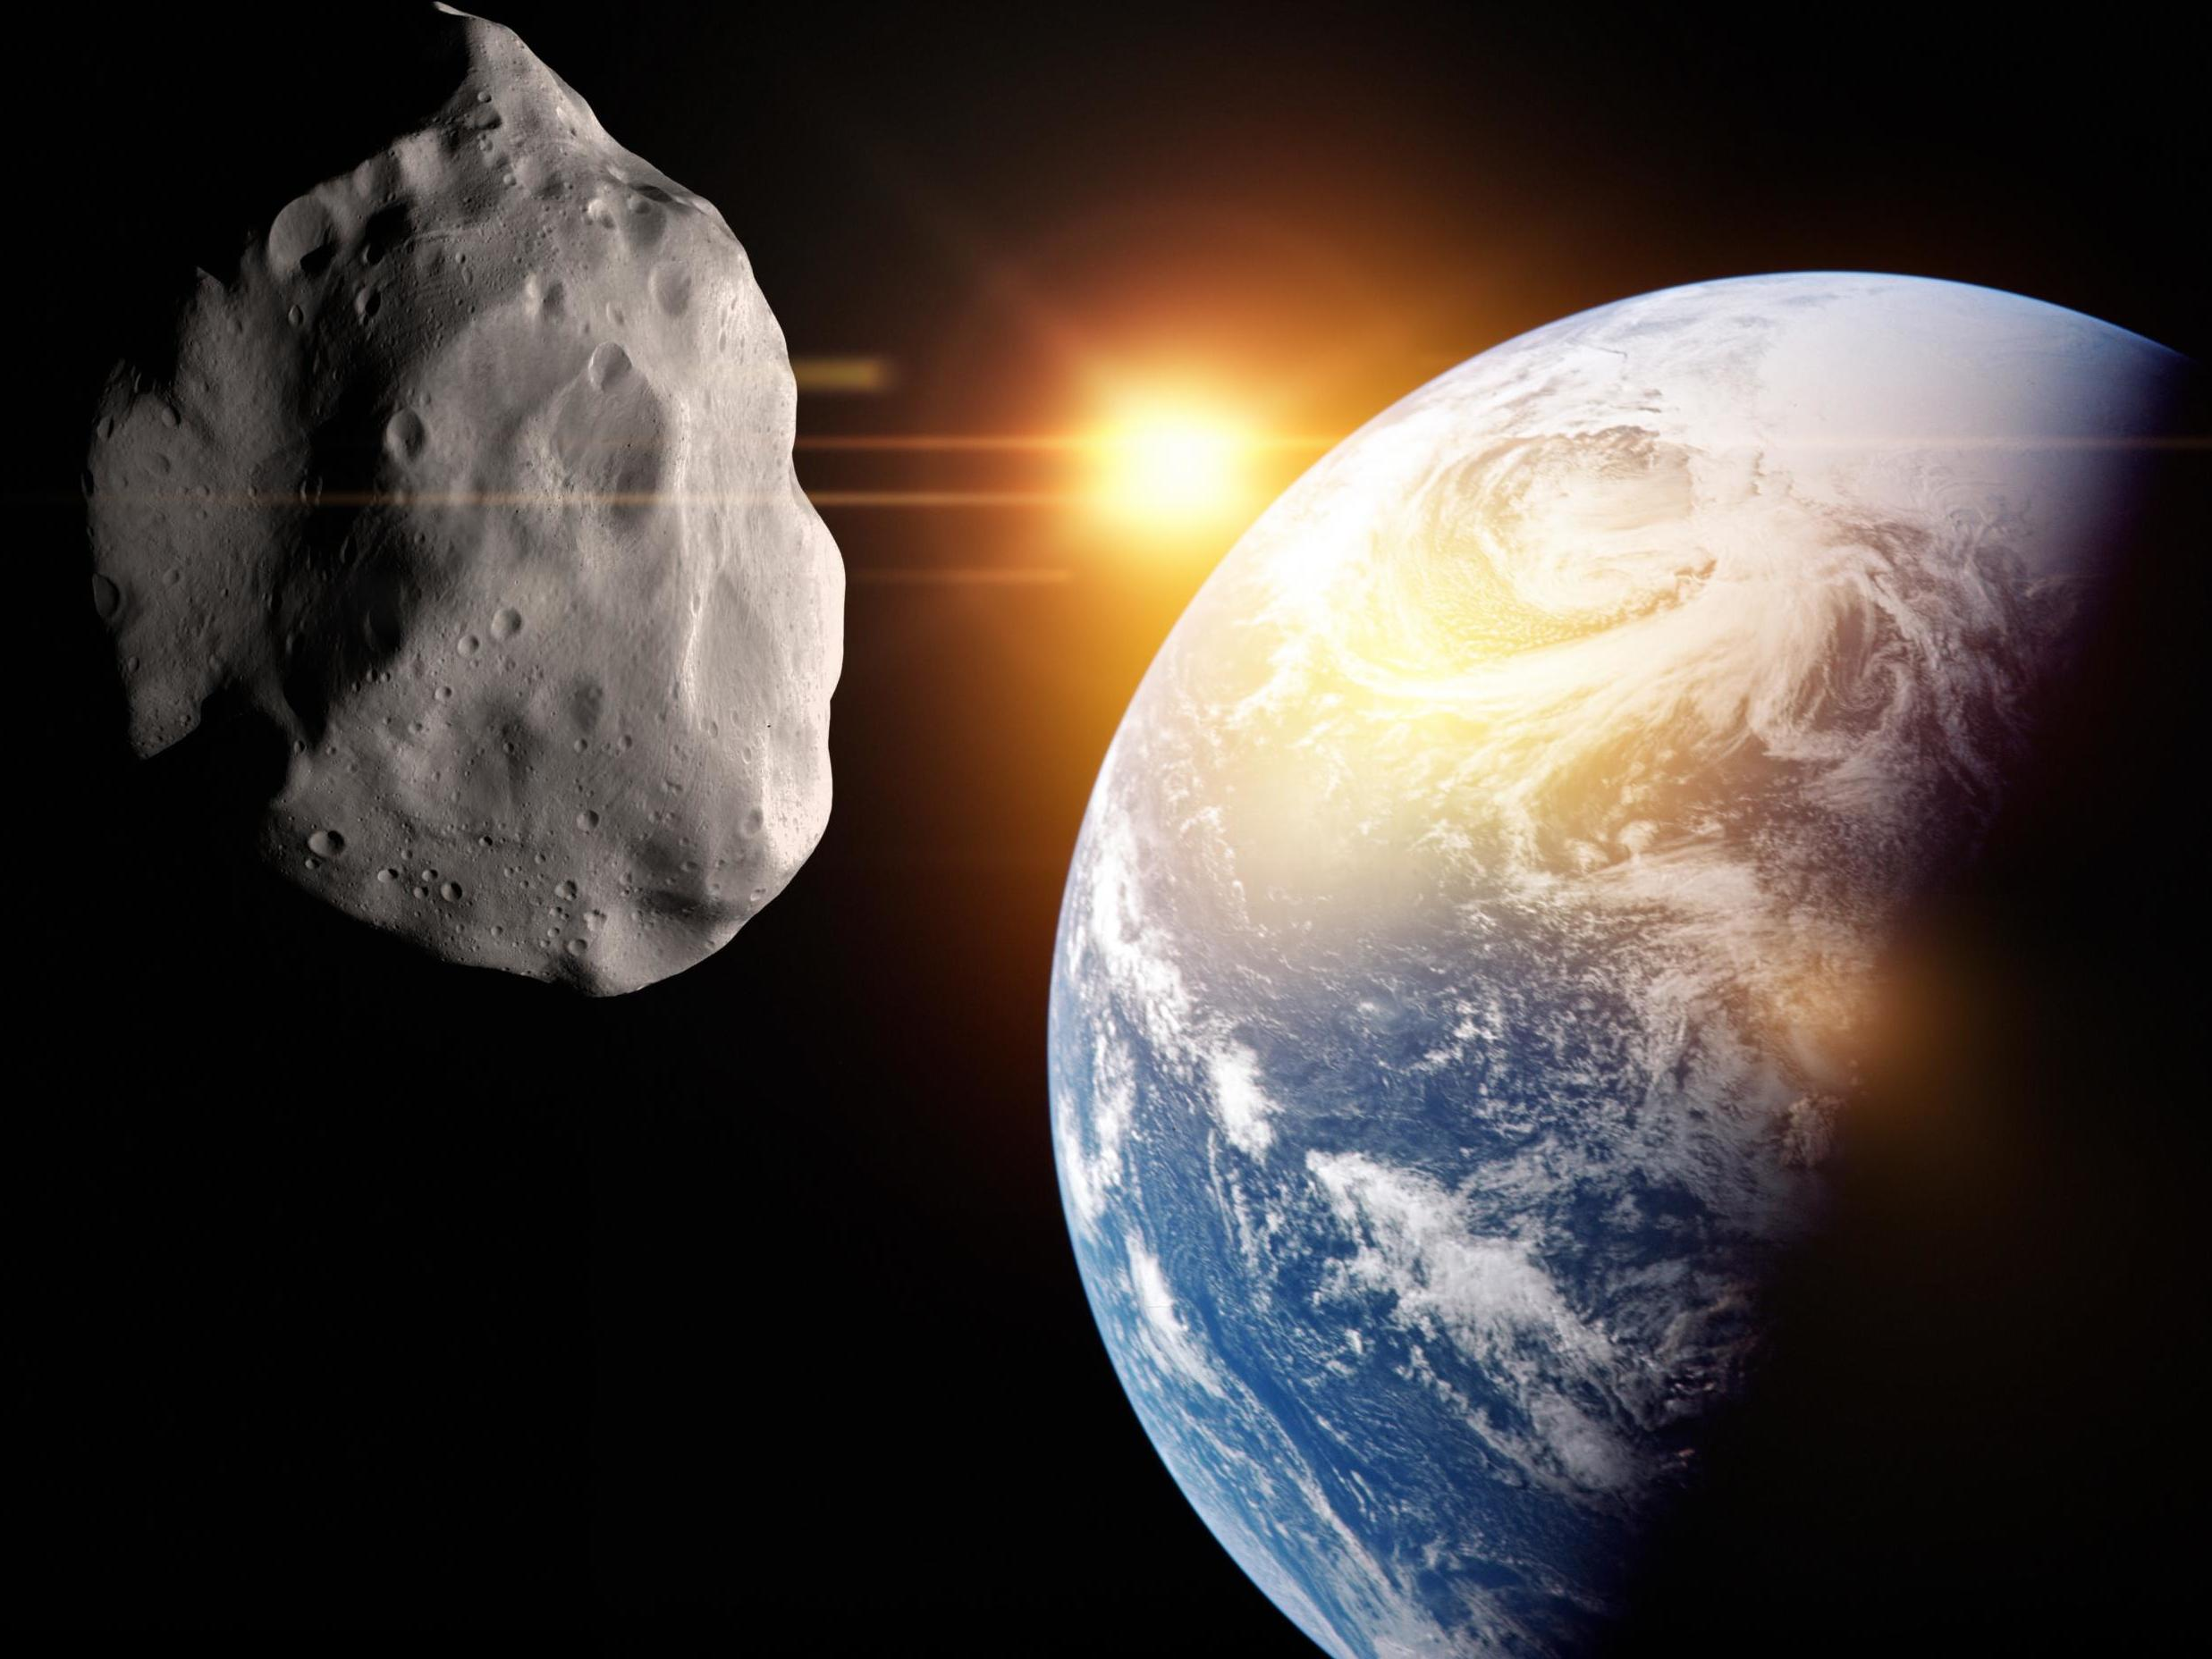 Asteroid flies by Earth closer than any seen before, Nasa says ...